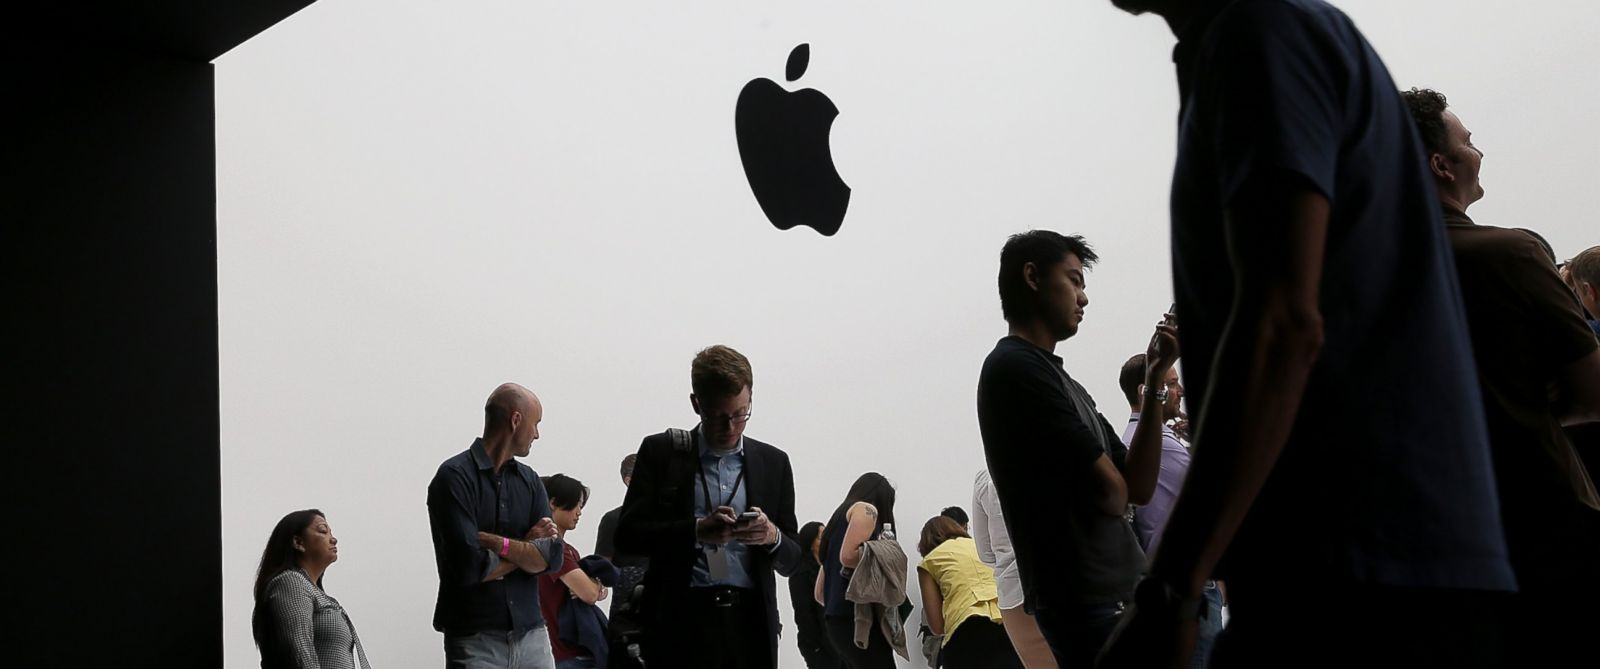 PHOTO: Attendees gather during an Apple special event at the Flint Center for the Performing Arts, Sept. 9, 2014 in Cupertino, California.